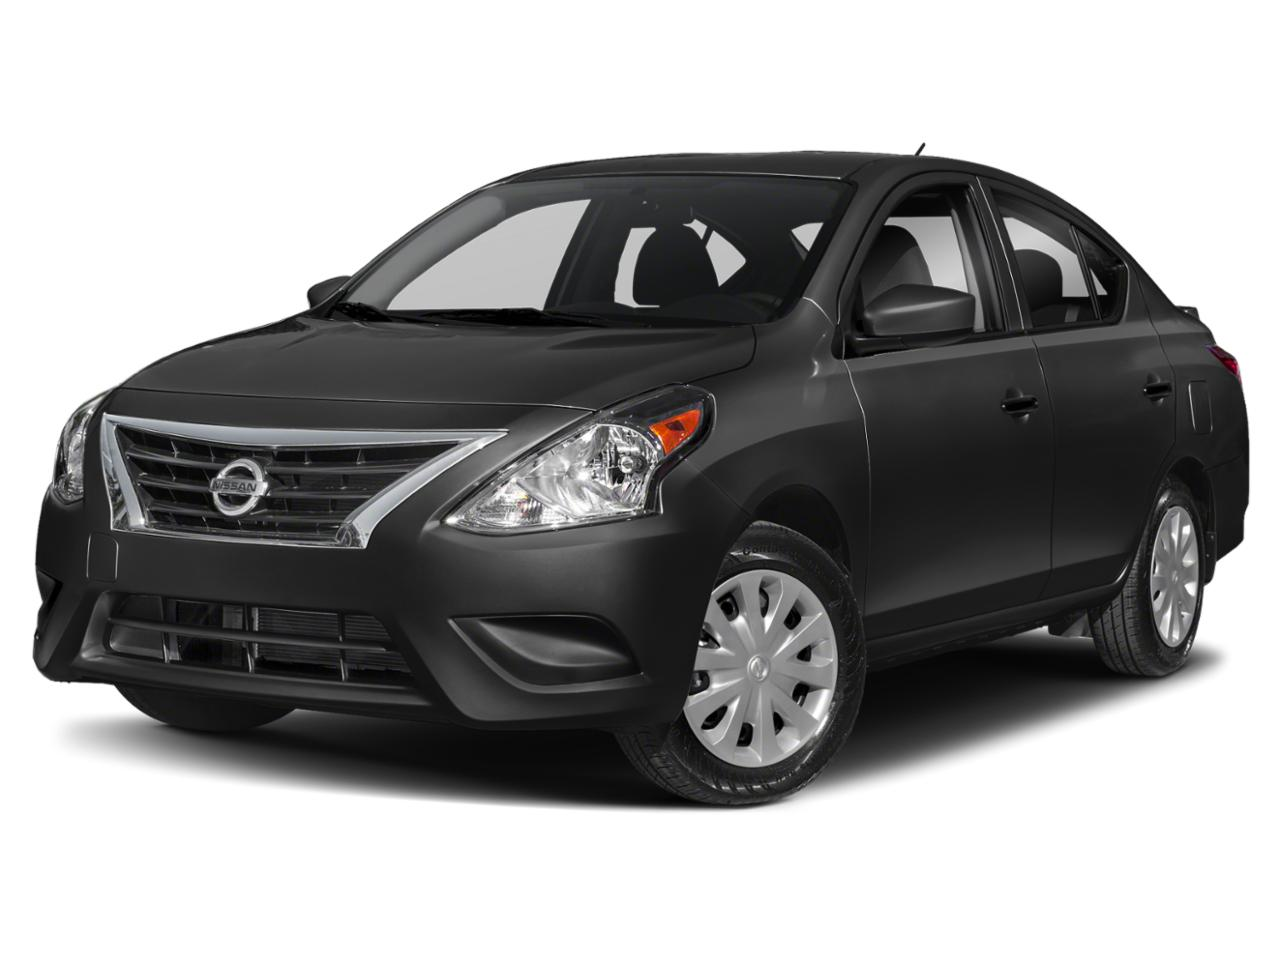 2019 Nissan Versa Sedan Vehicle Photo in Spokane, WA 99207